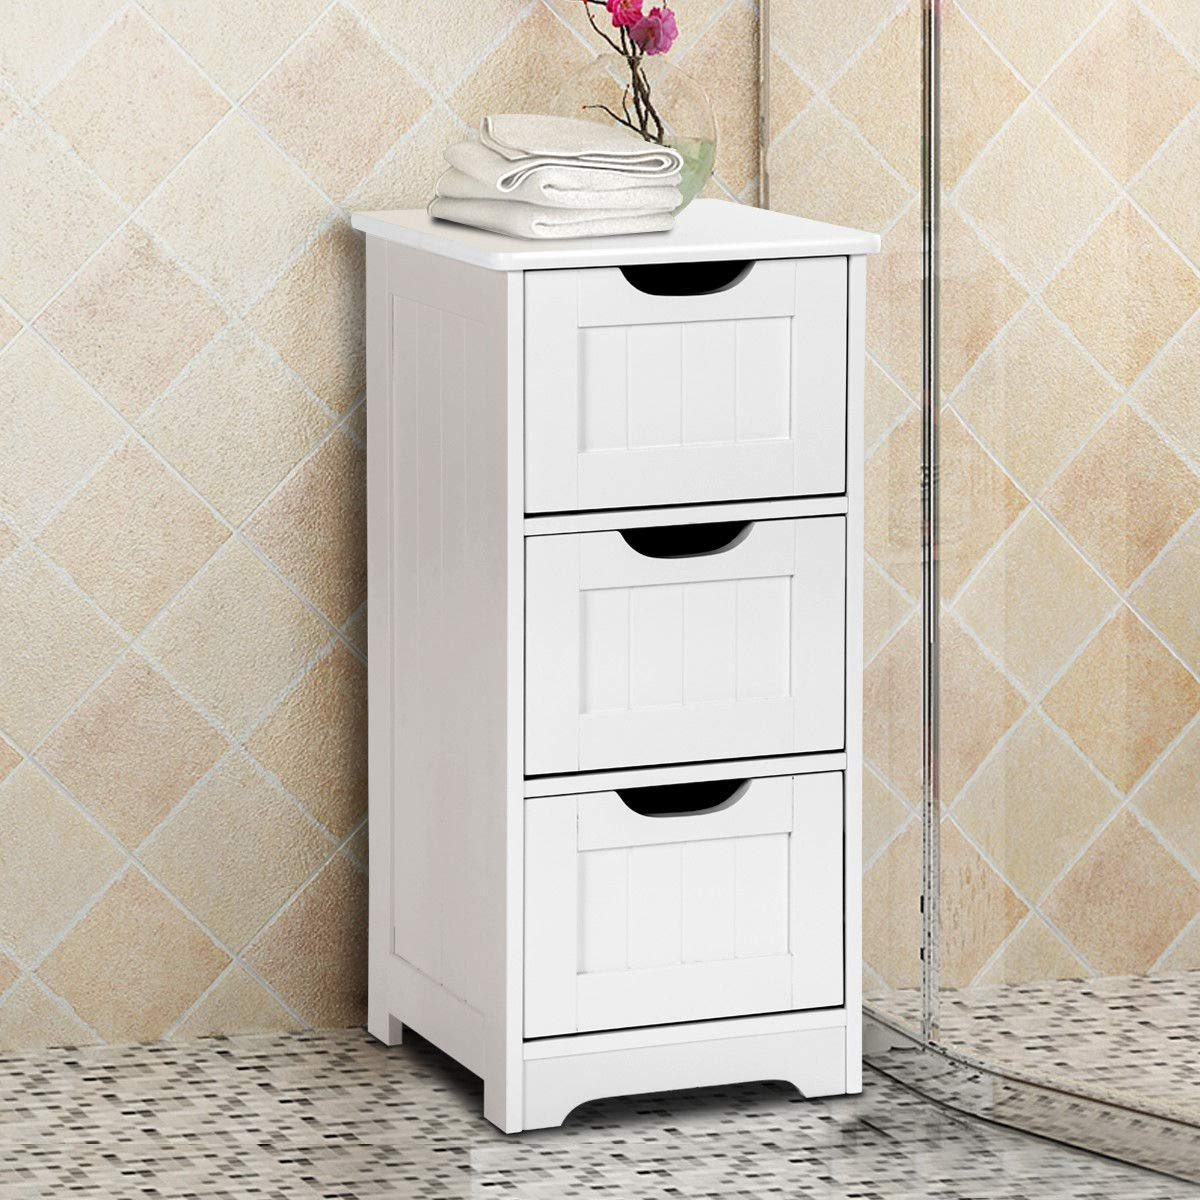 Tangkula Floor Cabinet with 3 Drawers Wooden Storage Cabinet for Home Office Living Room Bathroom Side Table Sturdy Modern Drawer Cabinet Organizer Bedroom Night Stand, White(3 Drawers) by TANGKULA (Image #4)